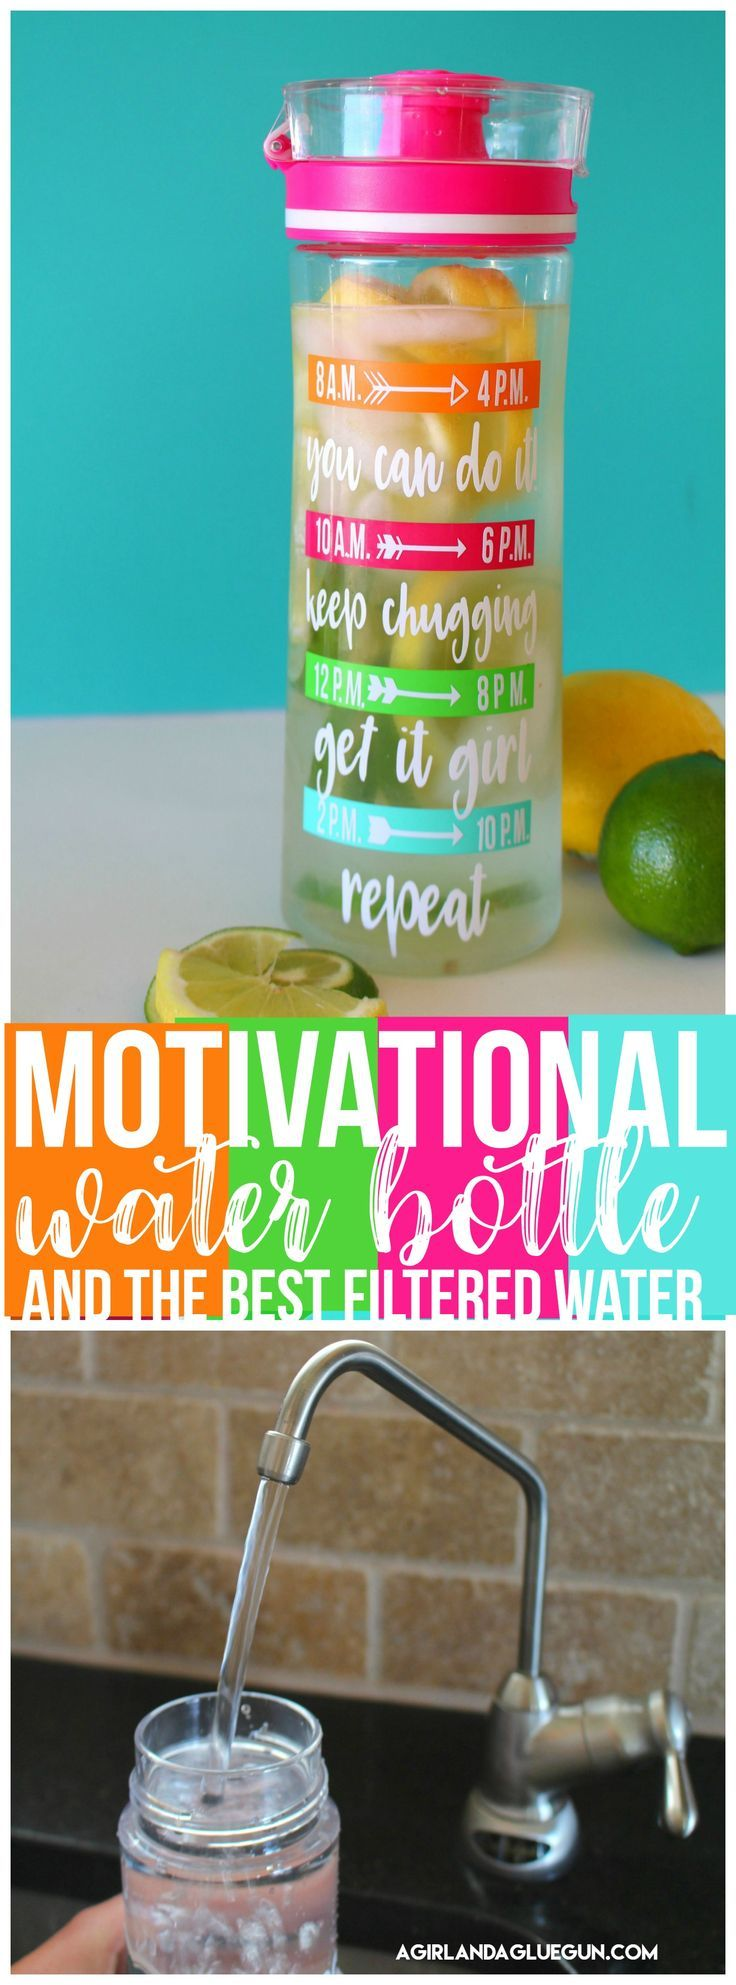 Motivational water bottle and the best filtered water #ad #culligan - A girl and a glue gun